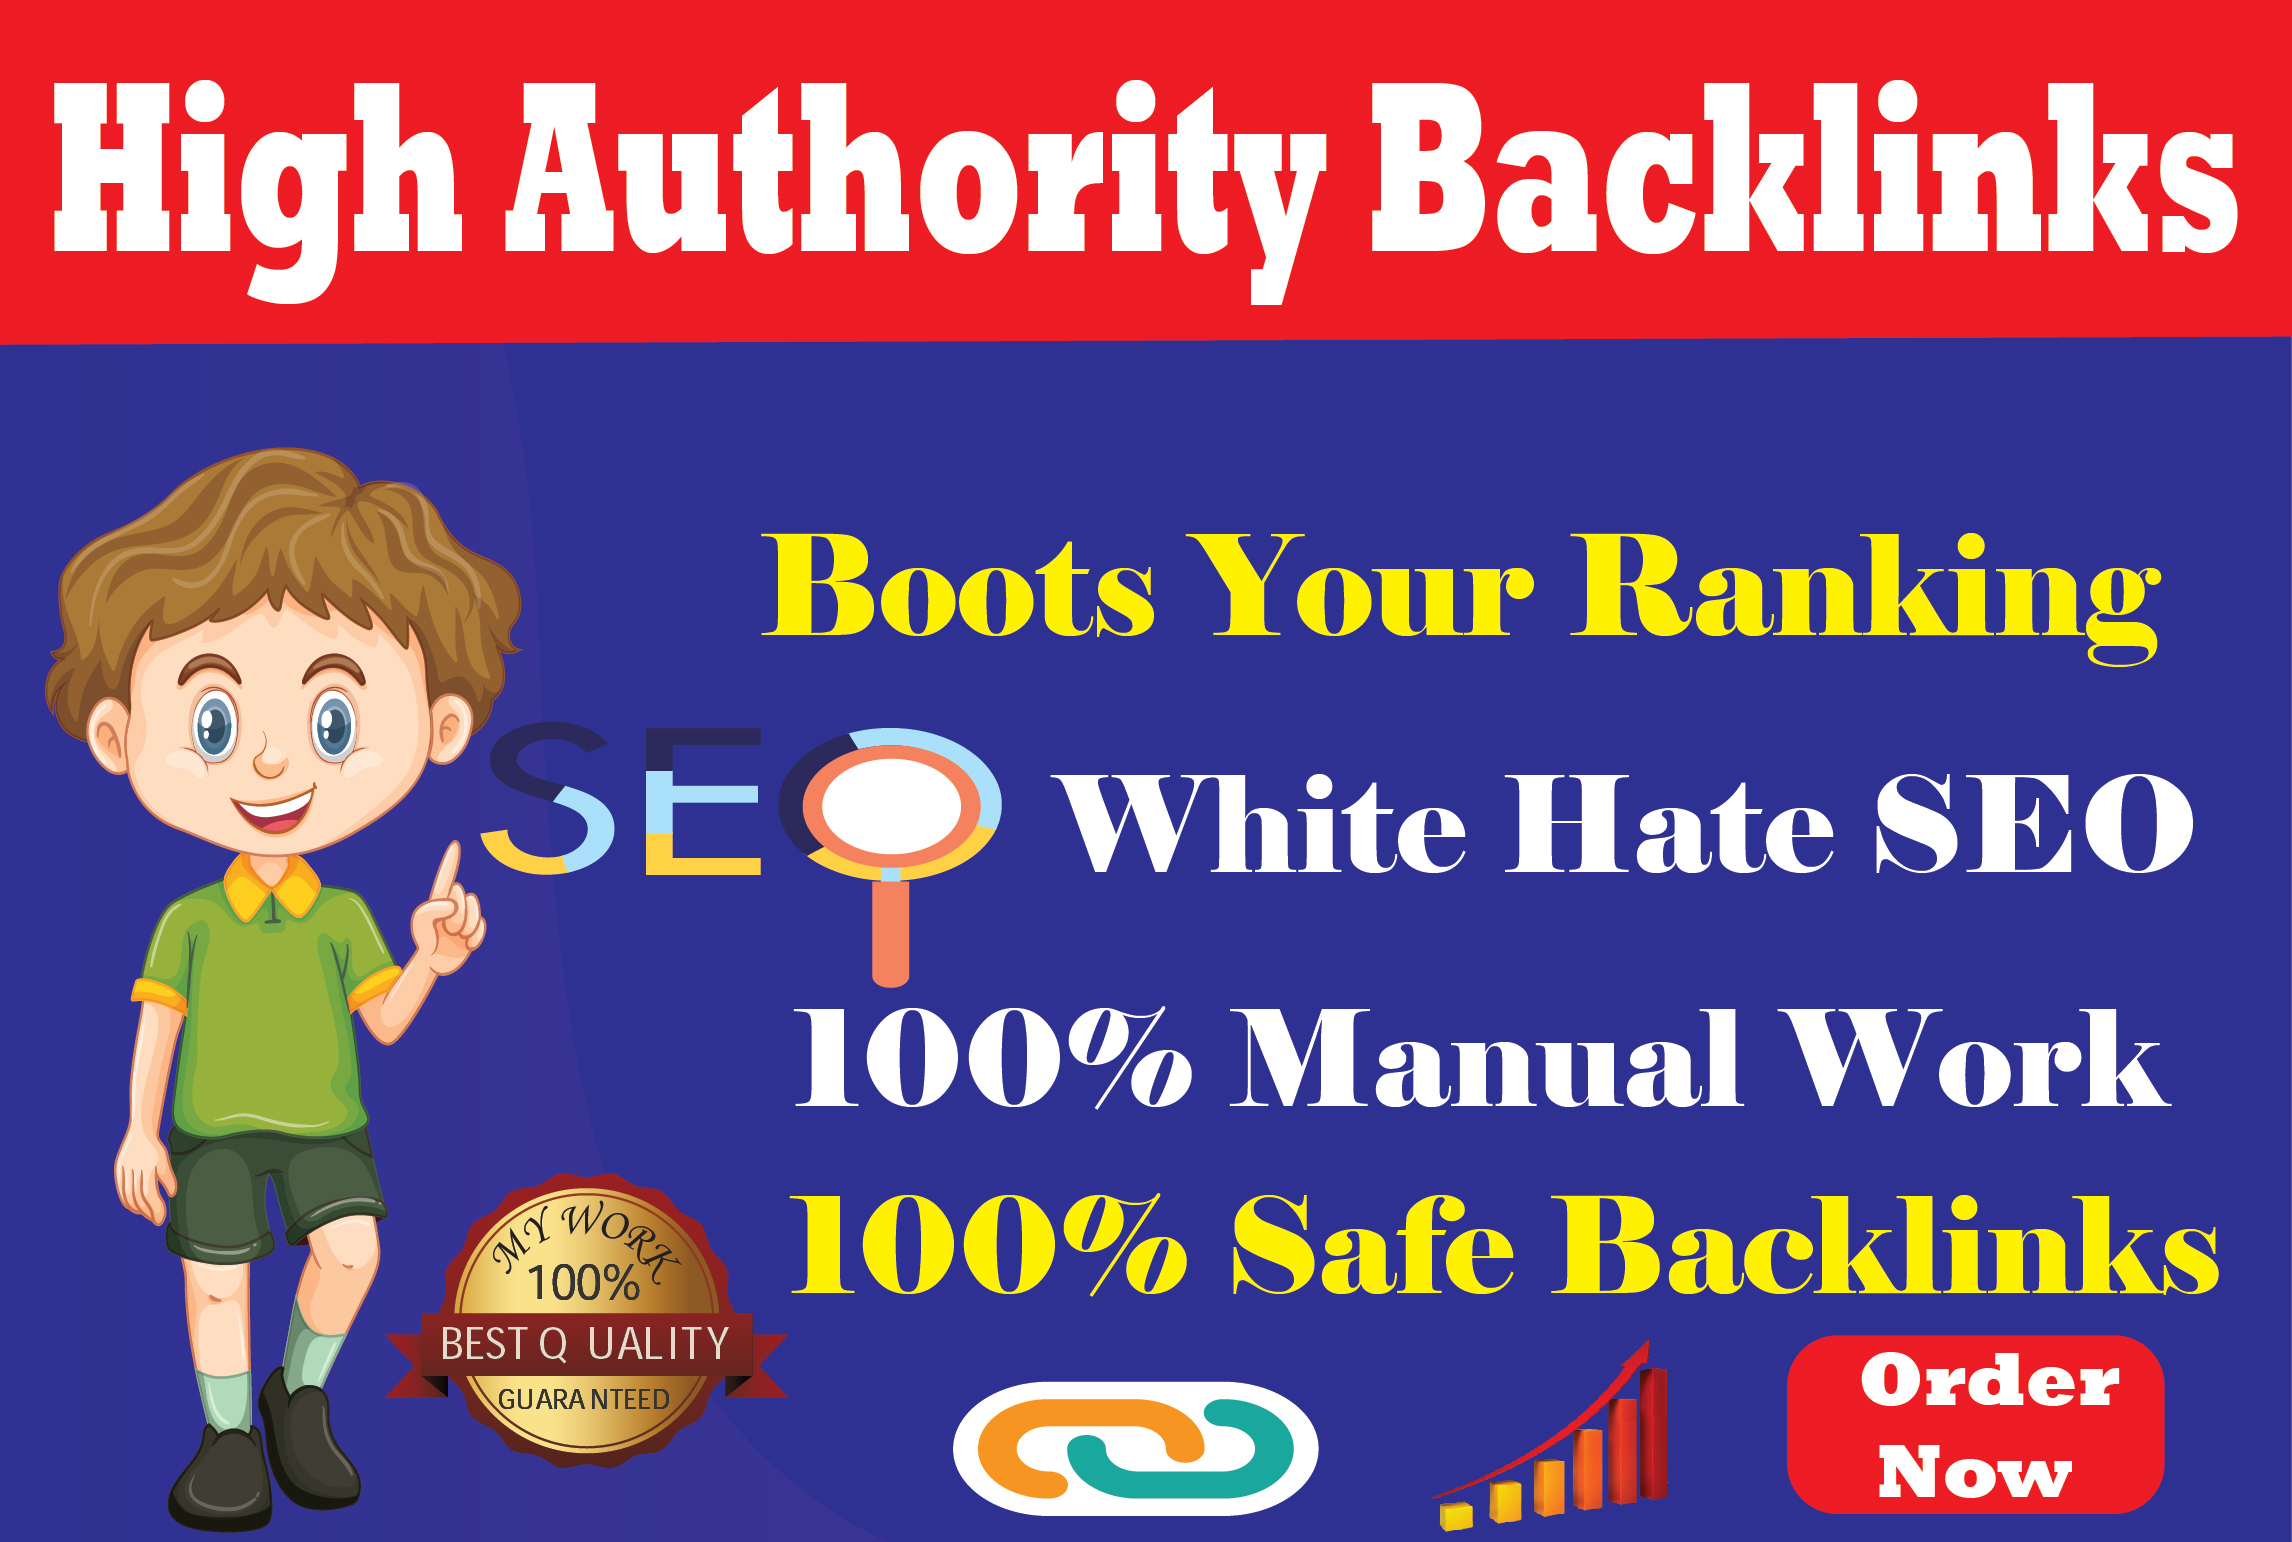 I will do 200 off-page SEO backlinks to improve website ranking